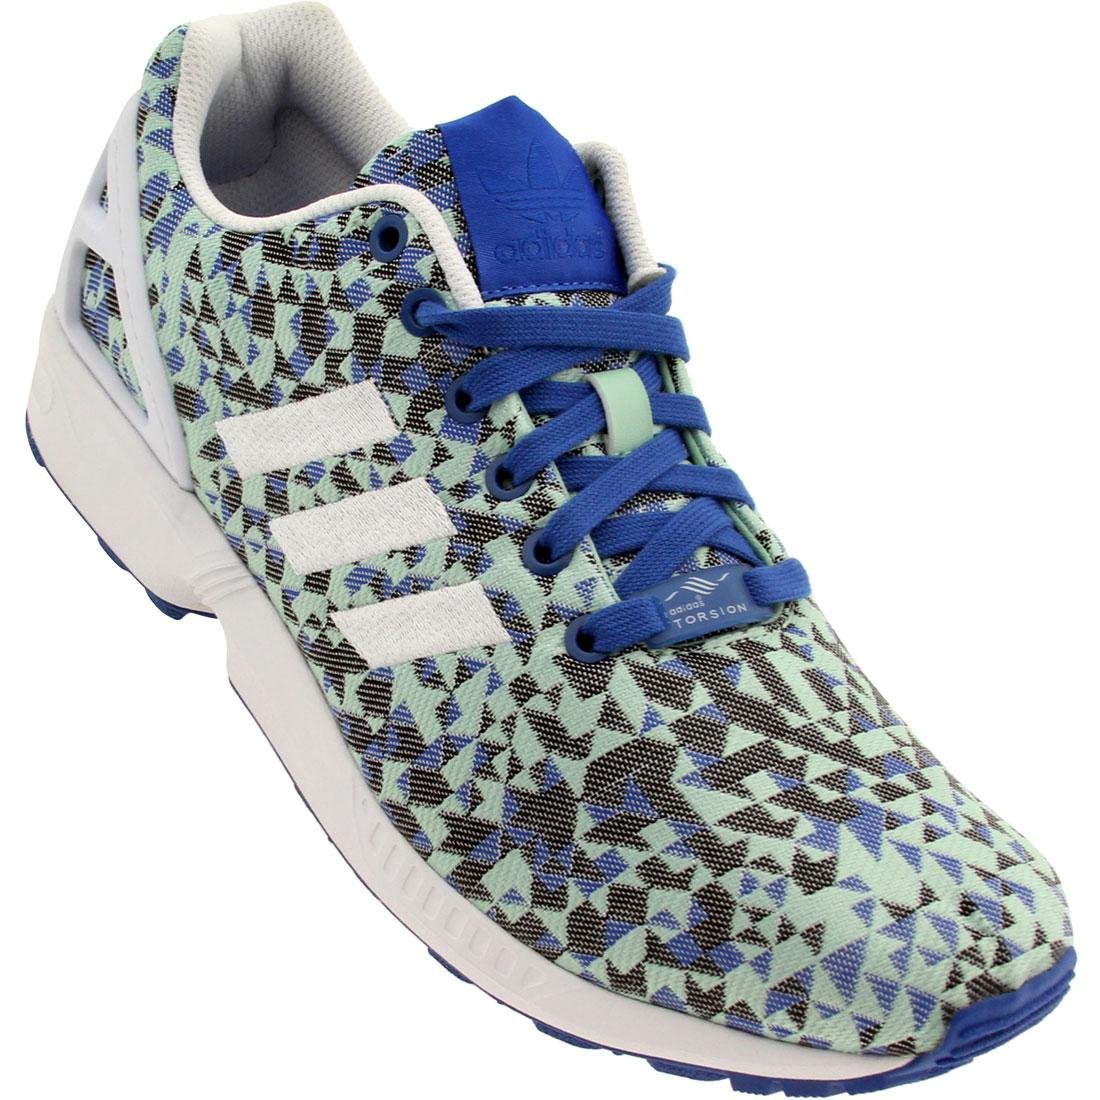 adidas ZX Flux Weave Men's Running Shoes B00O2CGN7G 10.5 B(M) US|Blue/White/Black